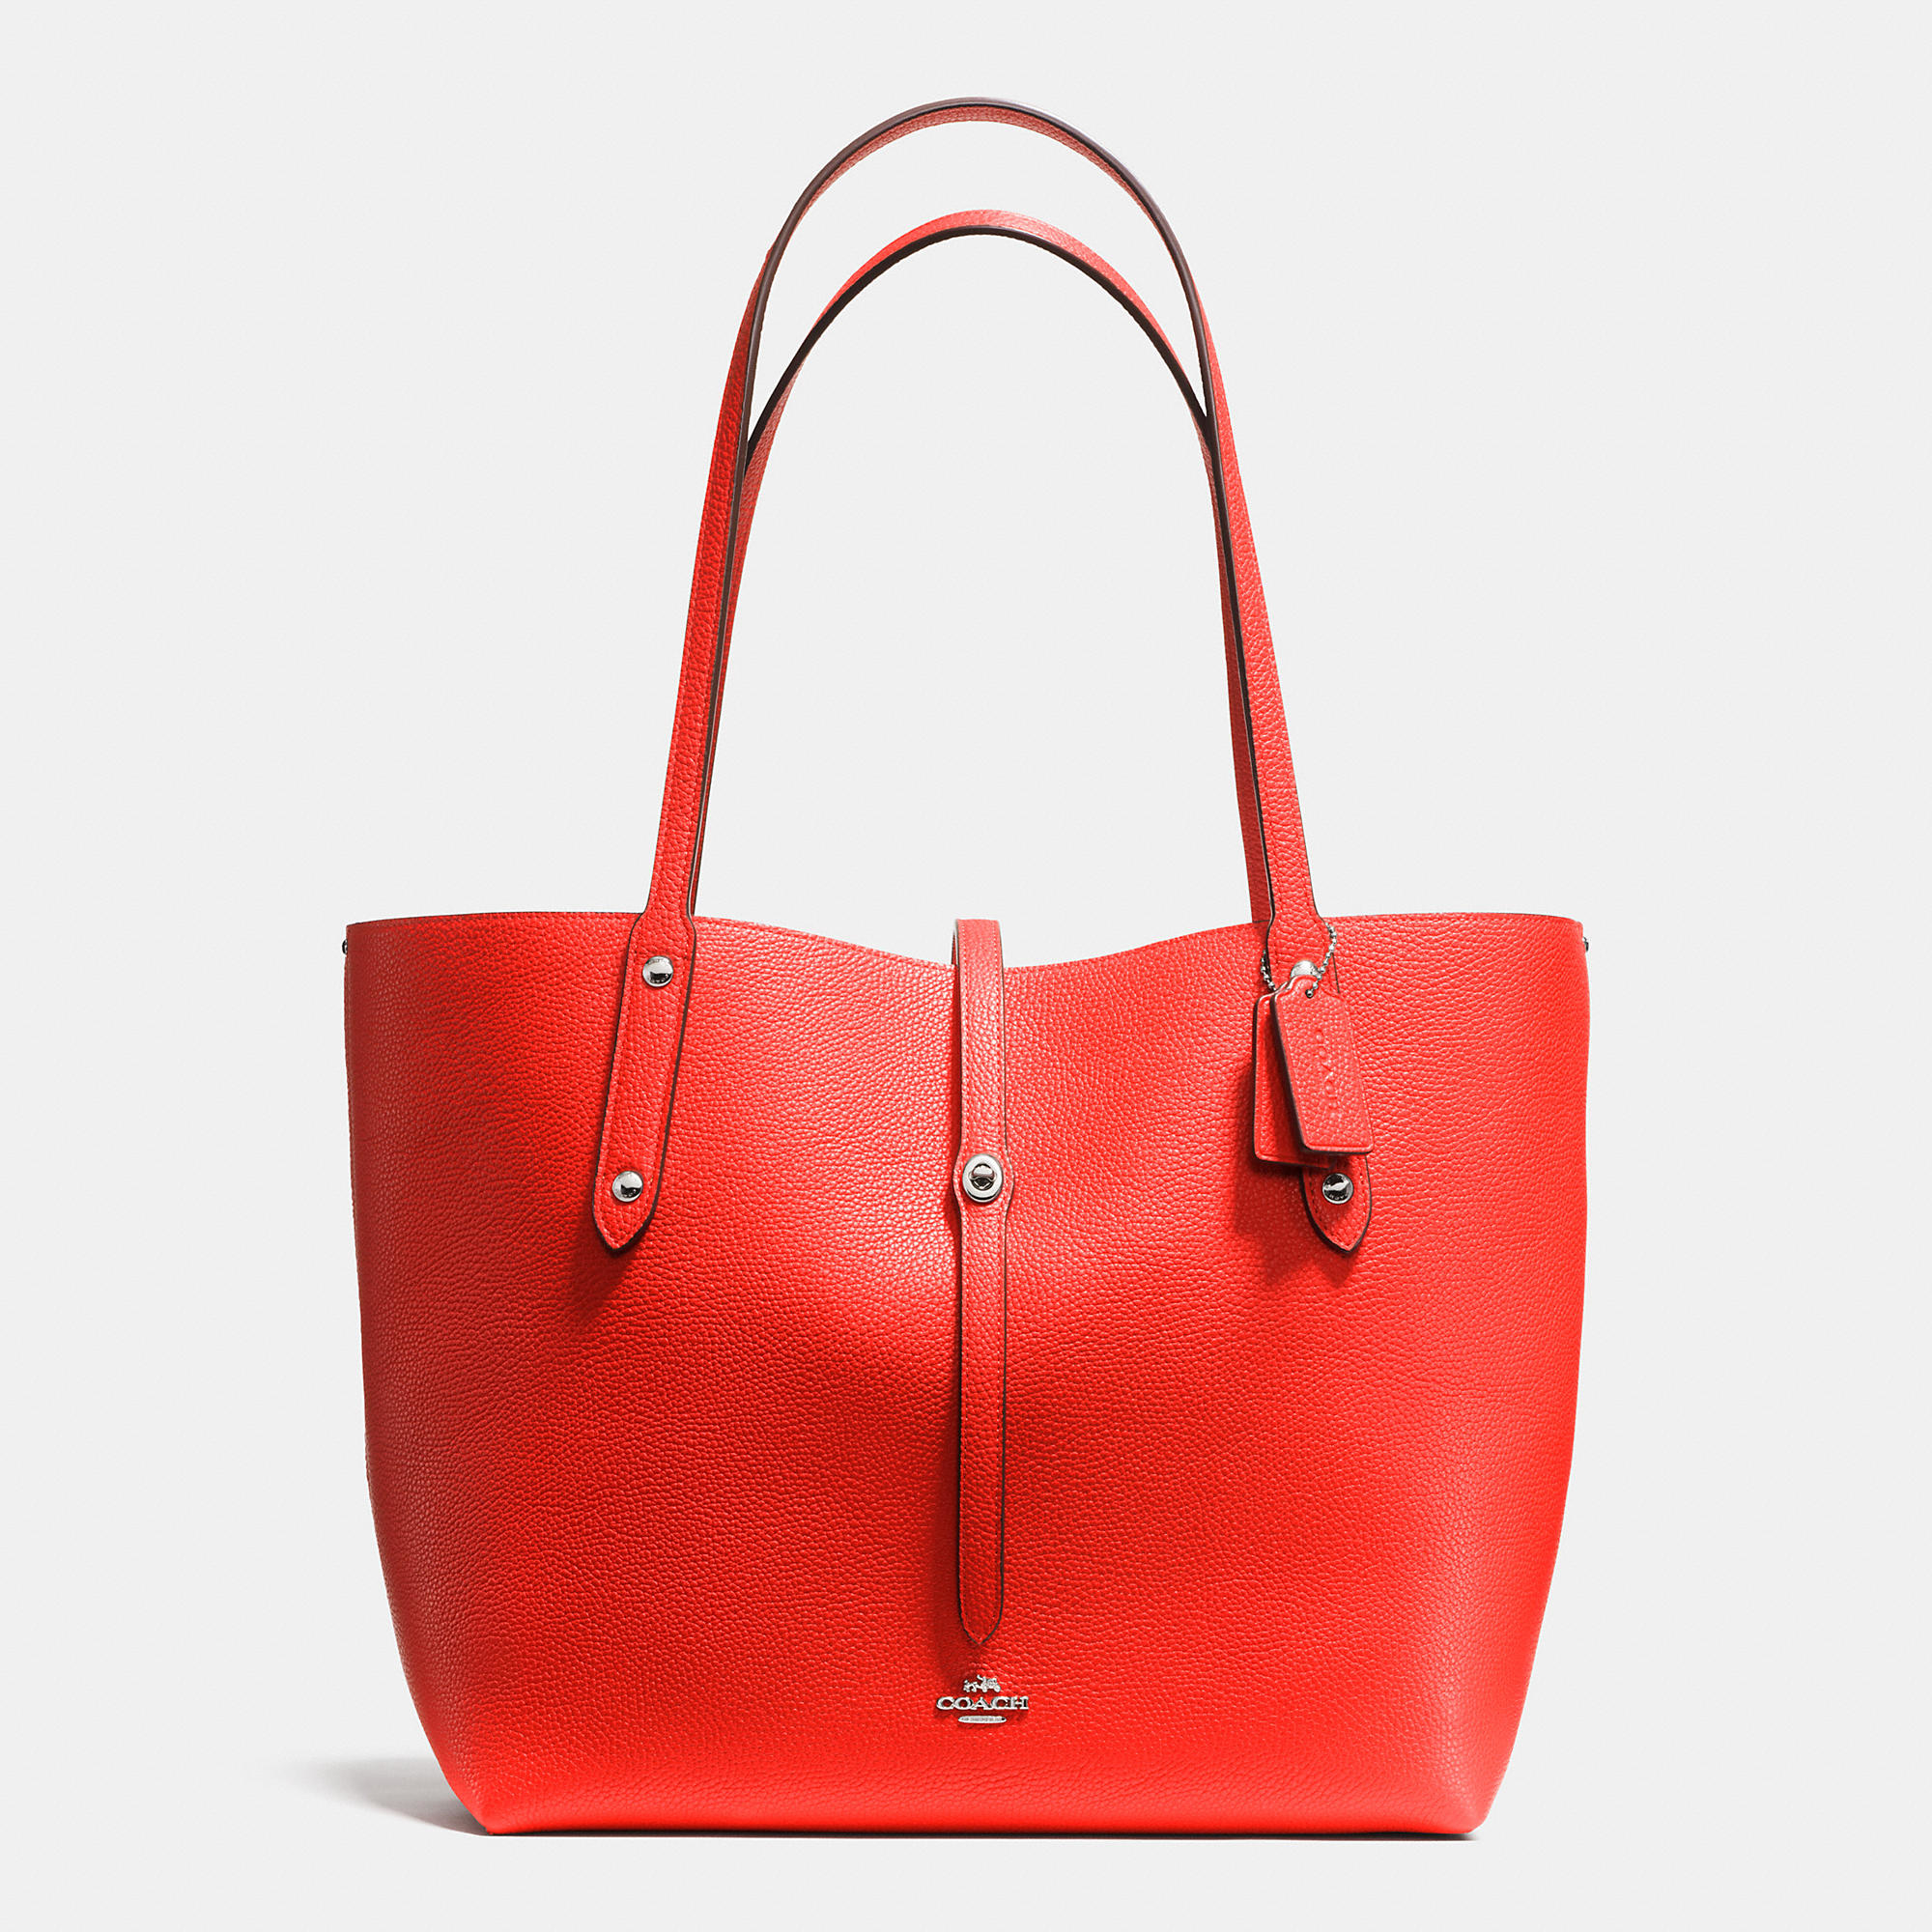 2d493d66a7 COACH Metallic Market Tote In Refined Pebble Leather